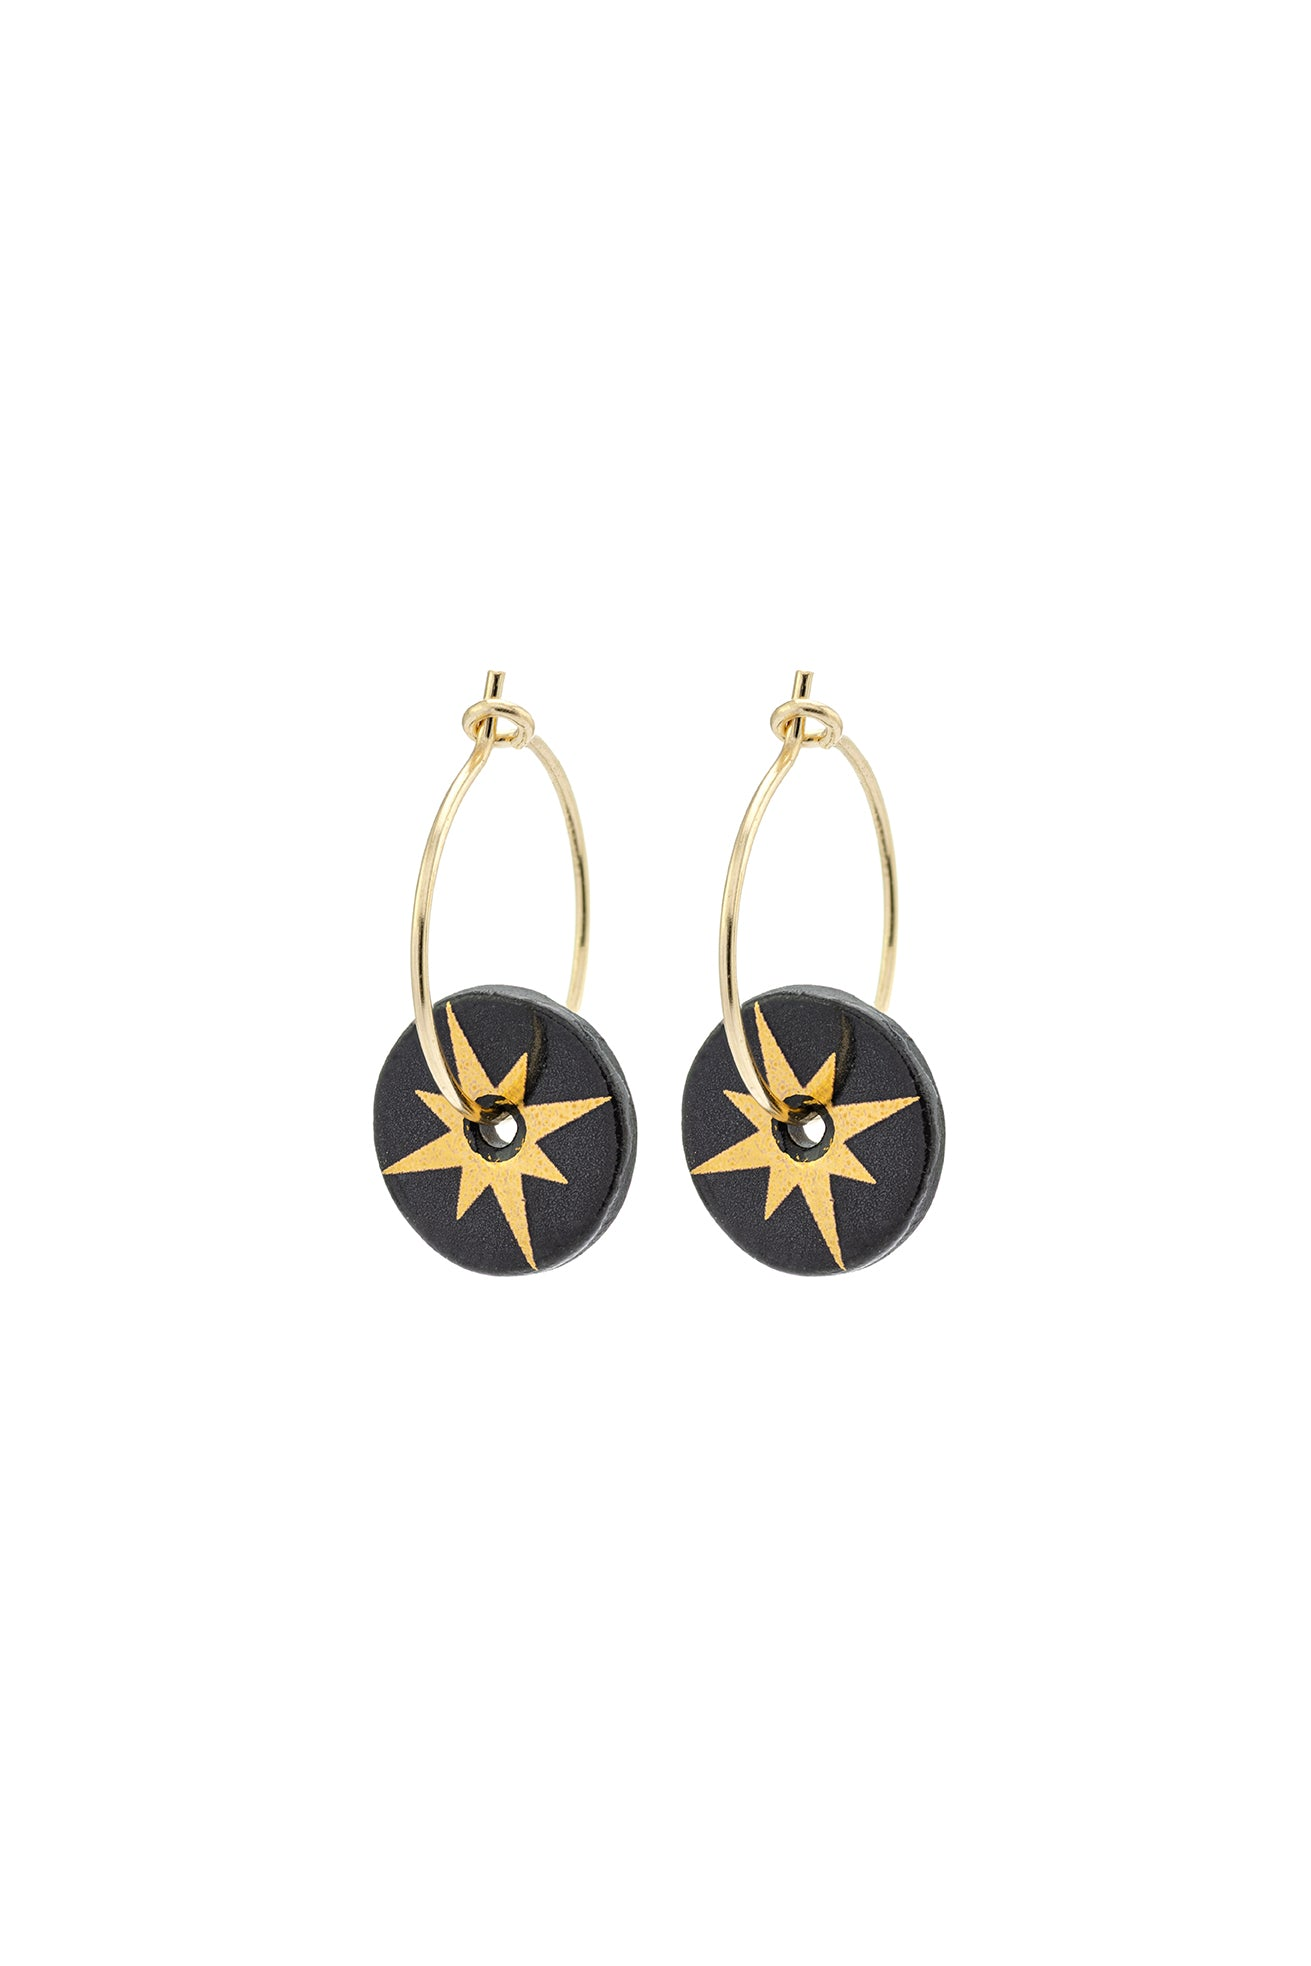 Porcelain Black Star Gold Hoop Earrings